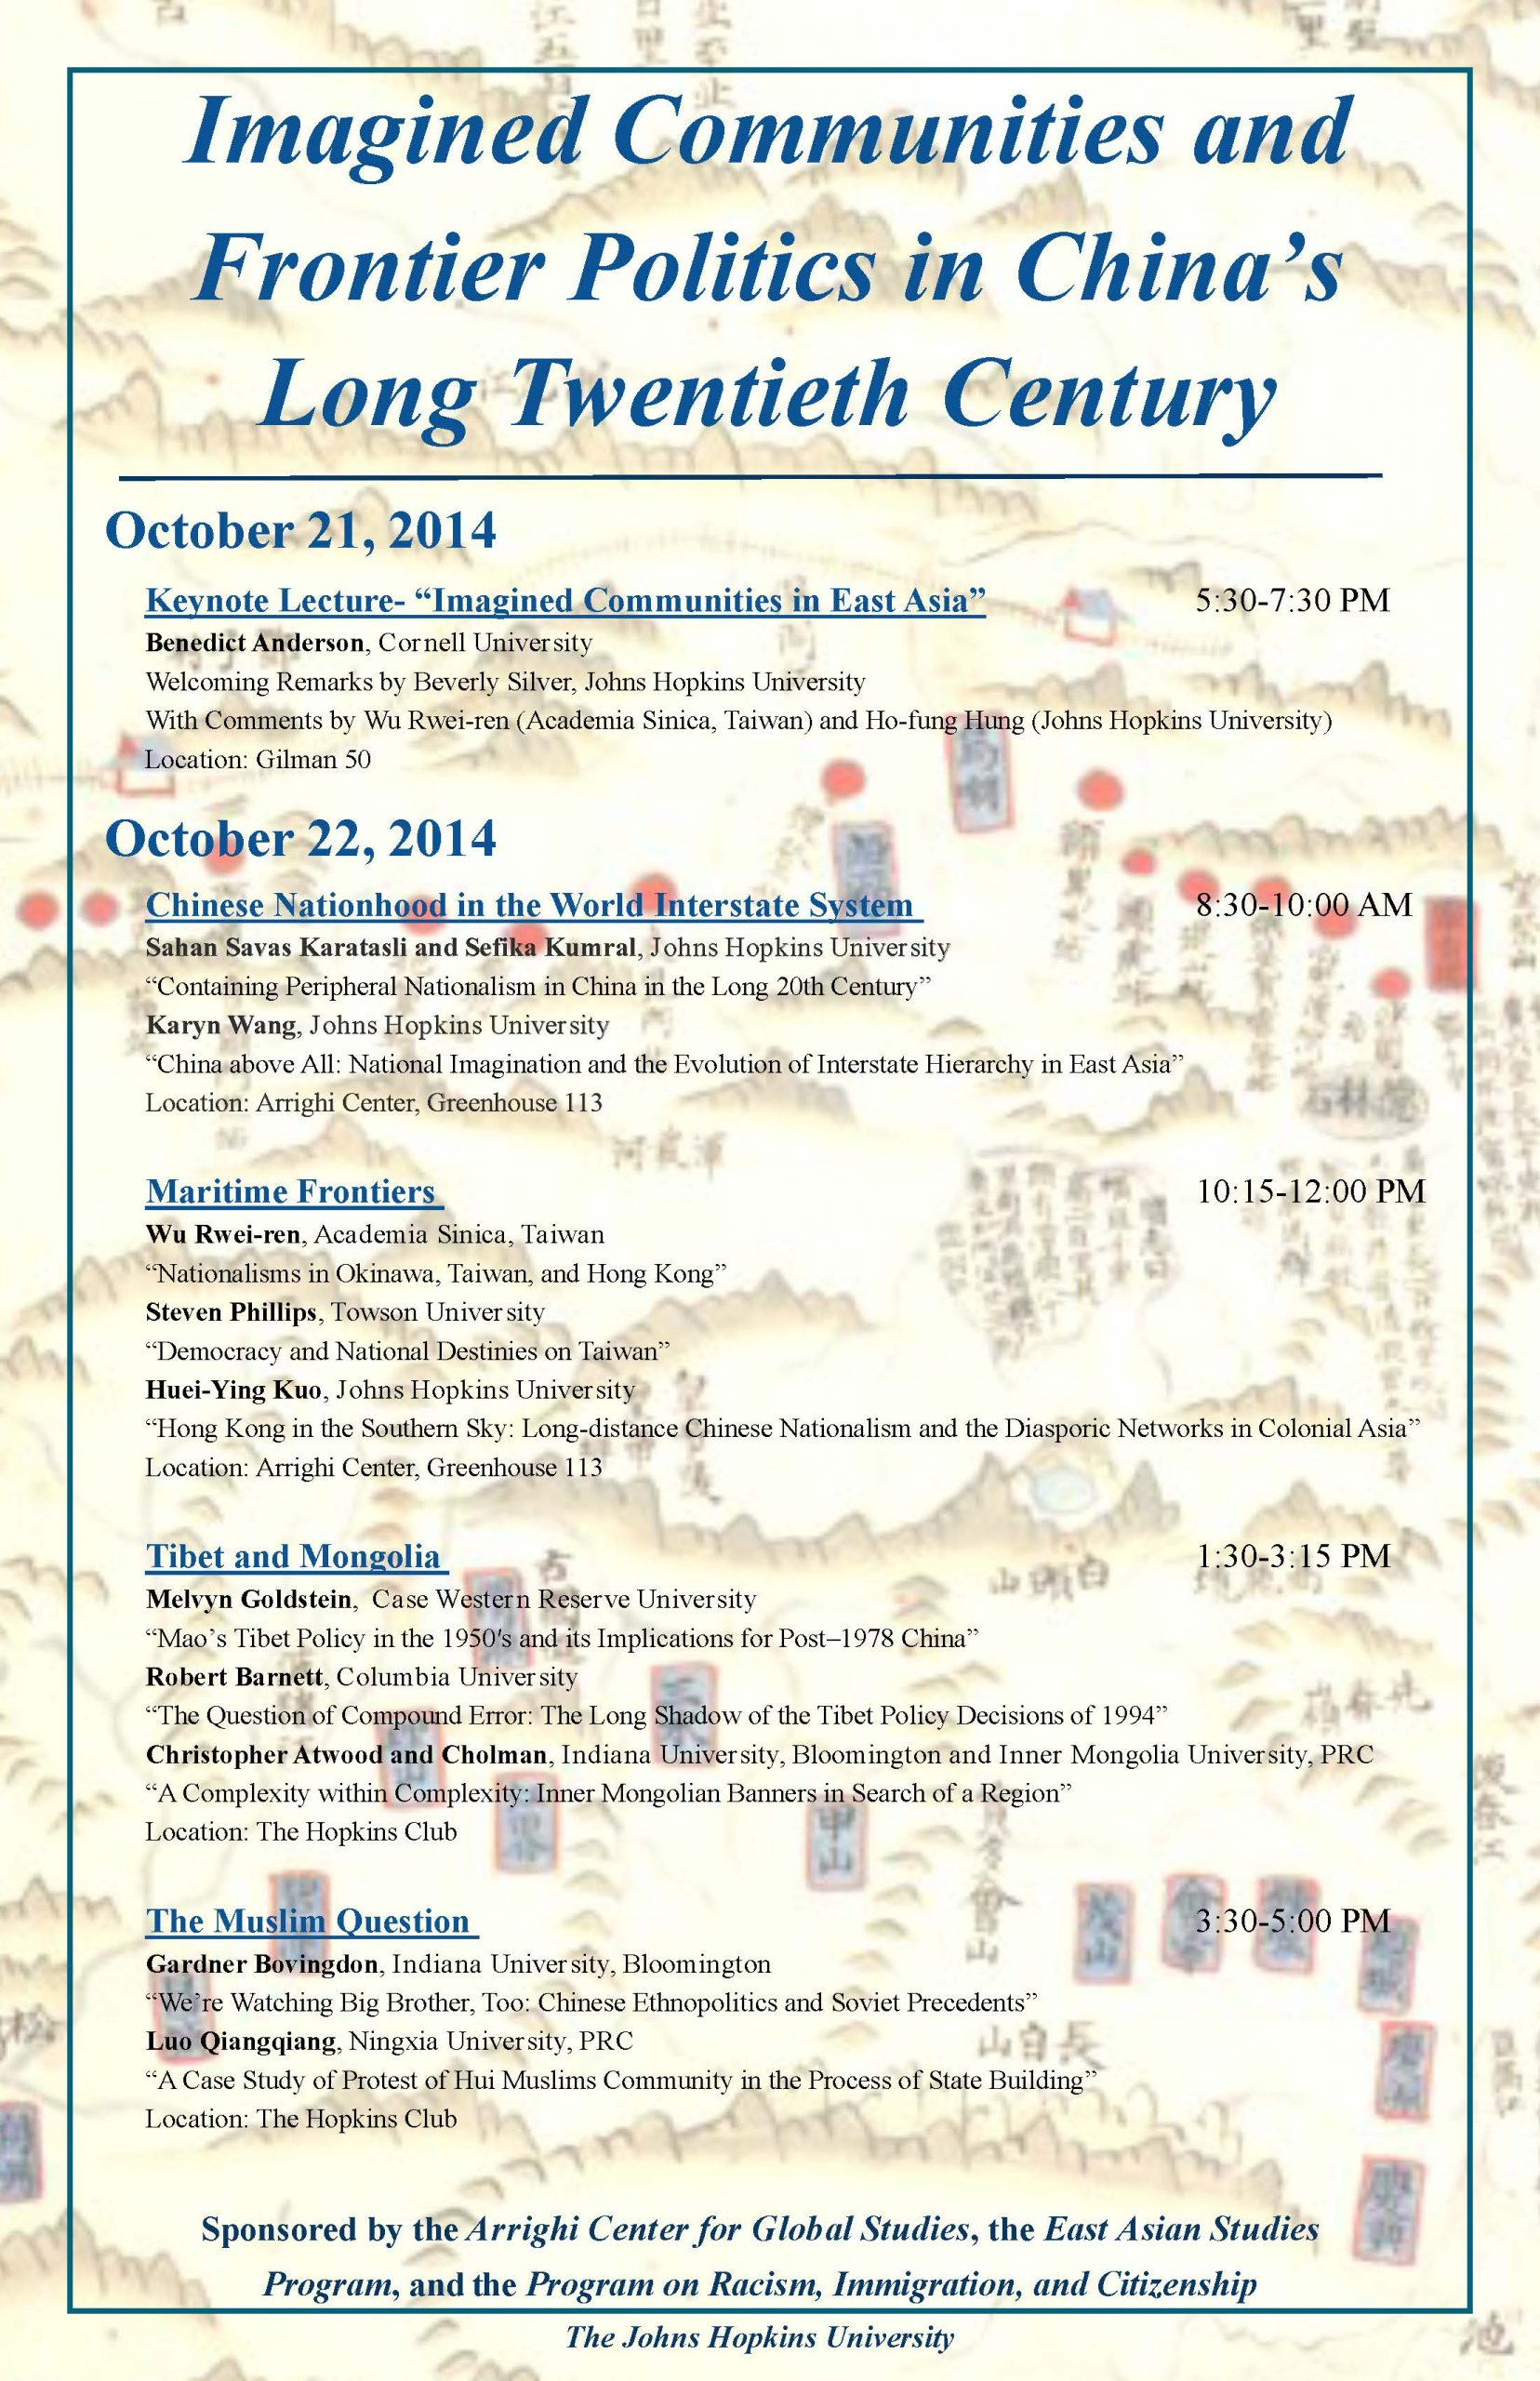 """Mini-conference on """"Imagined Communities and Frontier Politics in China's Long Twentieth Century"""", October 21-22, 2014"""